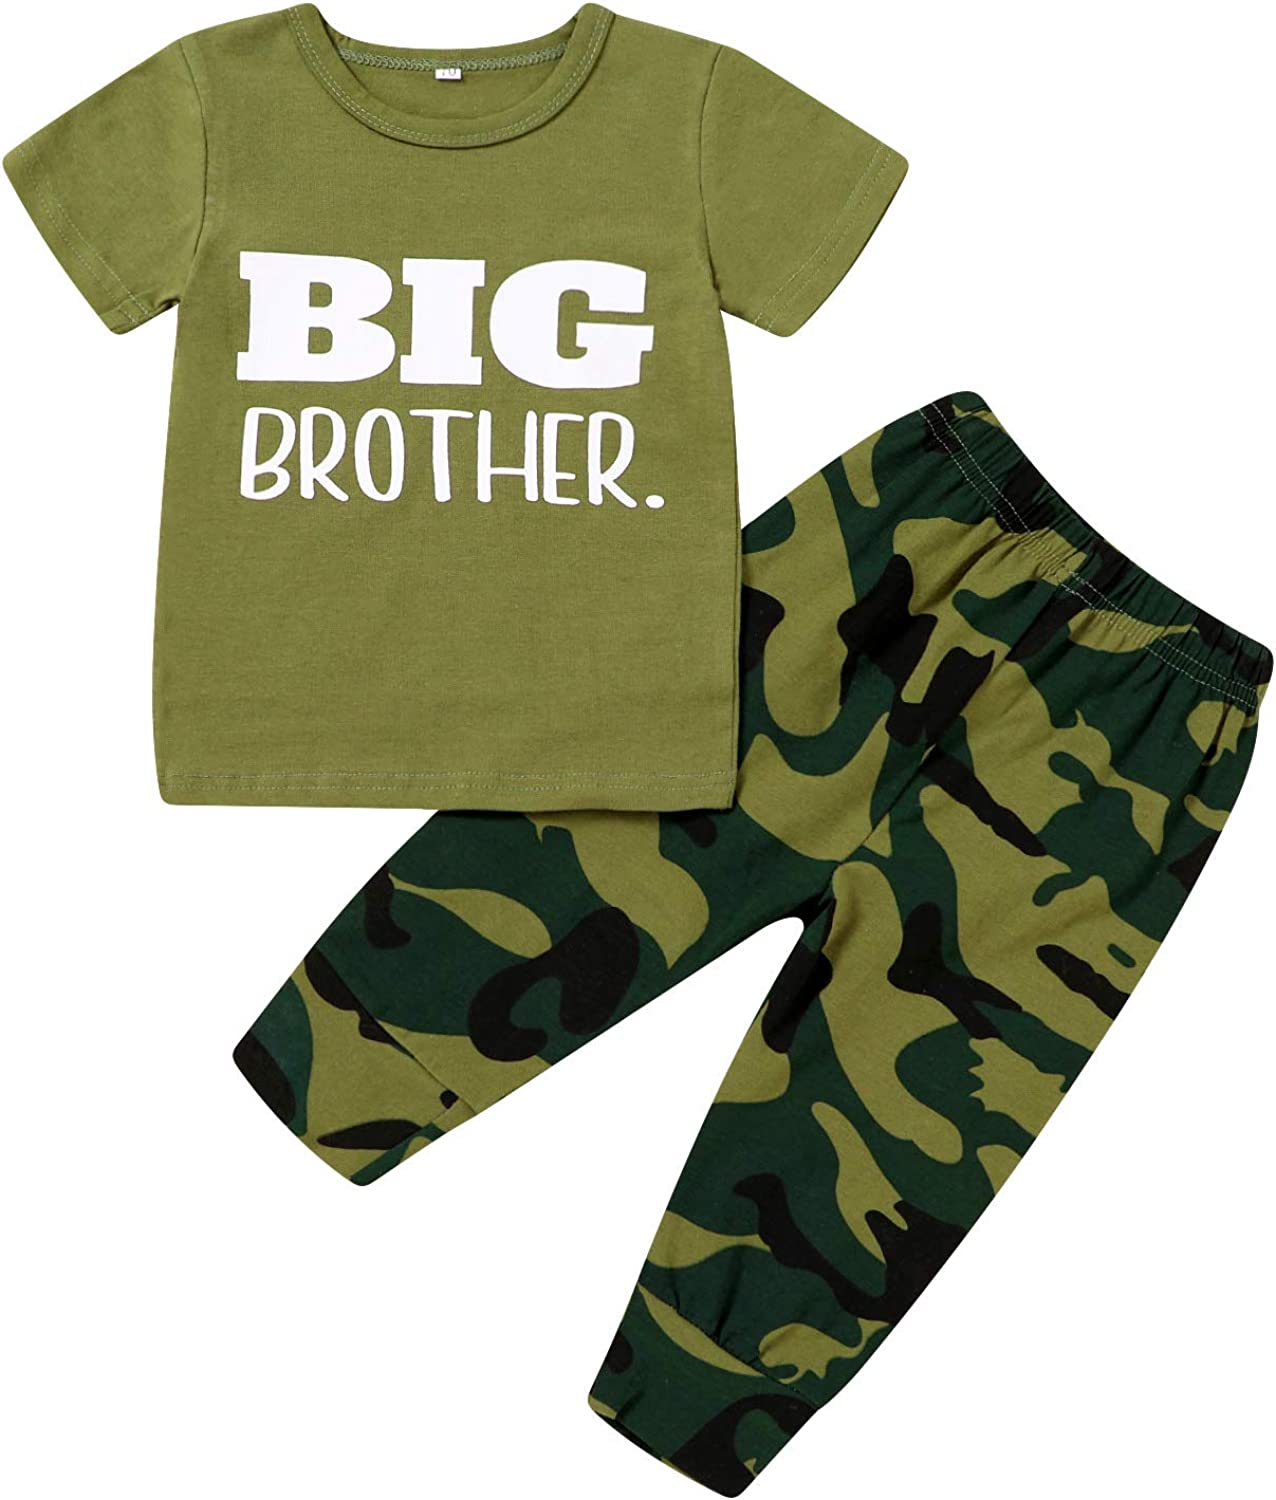 Newborn Baby Boy Girl Clothes Little Brother/Sister Letter Print Romper + Camouflage Pants 3Pcs Infant Outfit Set